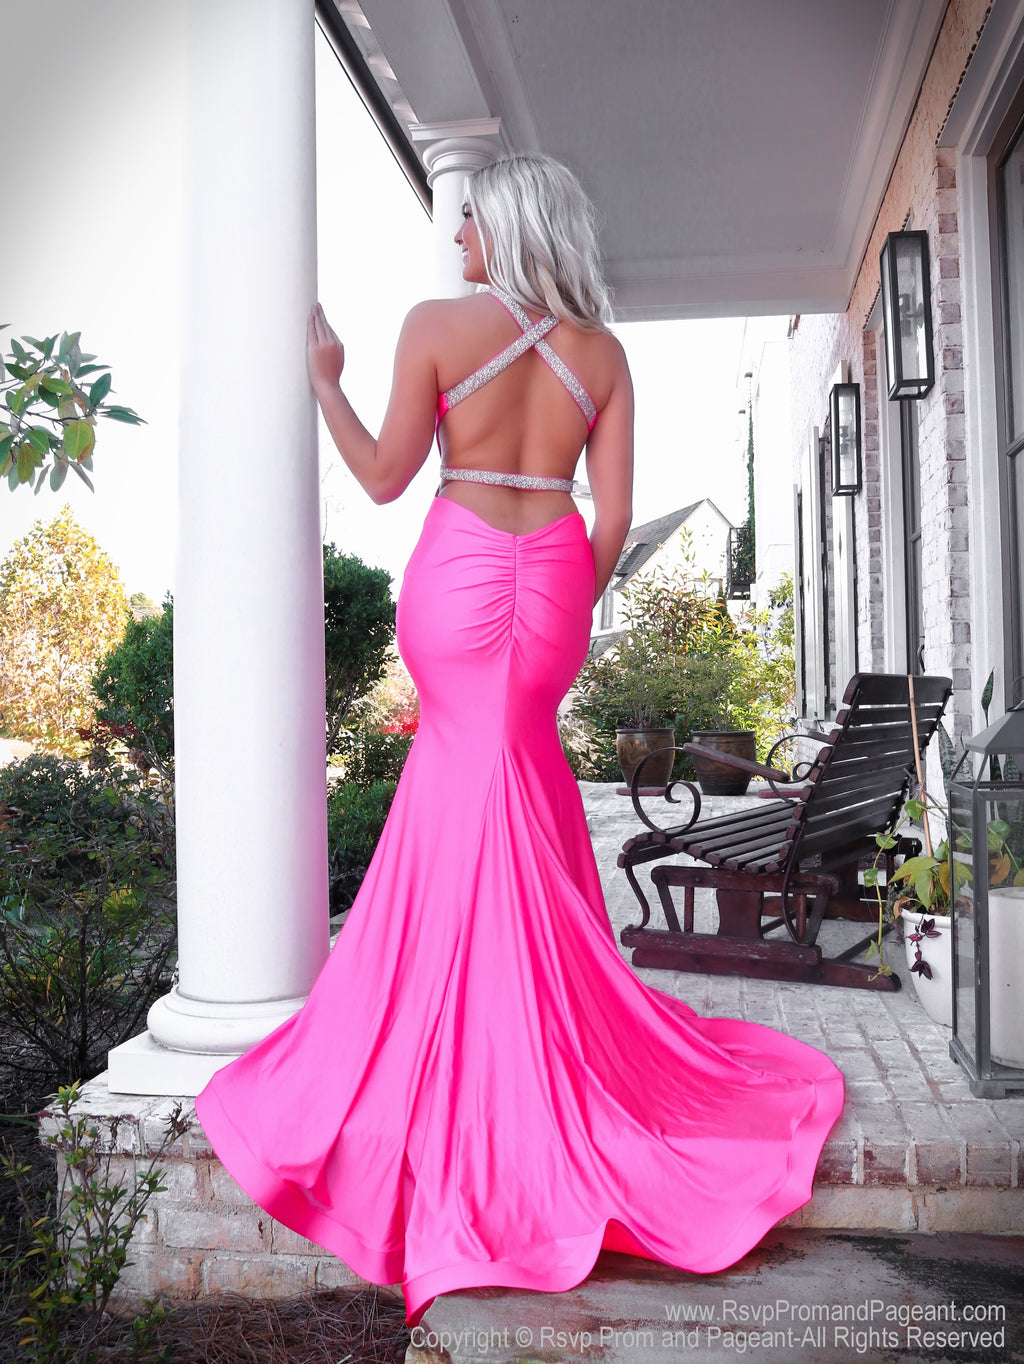 Back of model in this beautiful fit and flare prom dress with its sexy open back and sparkling beaded straps which makes it PERFECT for Prom! And it's at Rsvp Prom and Pageant, your source for the HOTTEST Prom and Pageant Dresses and Exclusive Evening Gowns and located in Atlanta, Georgia!